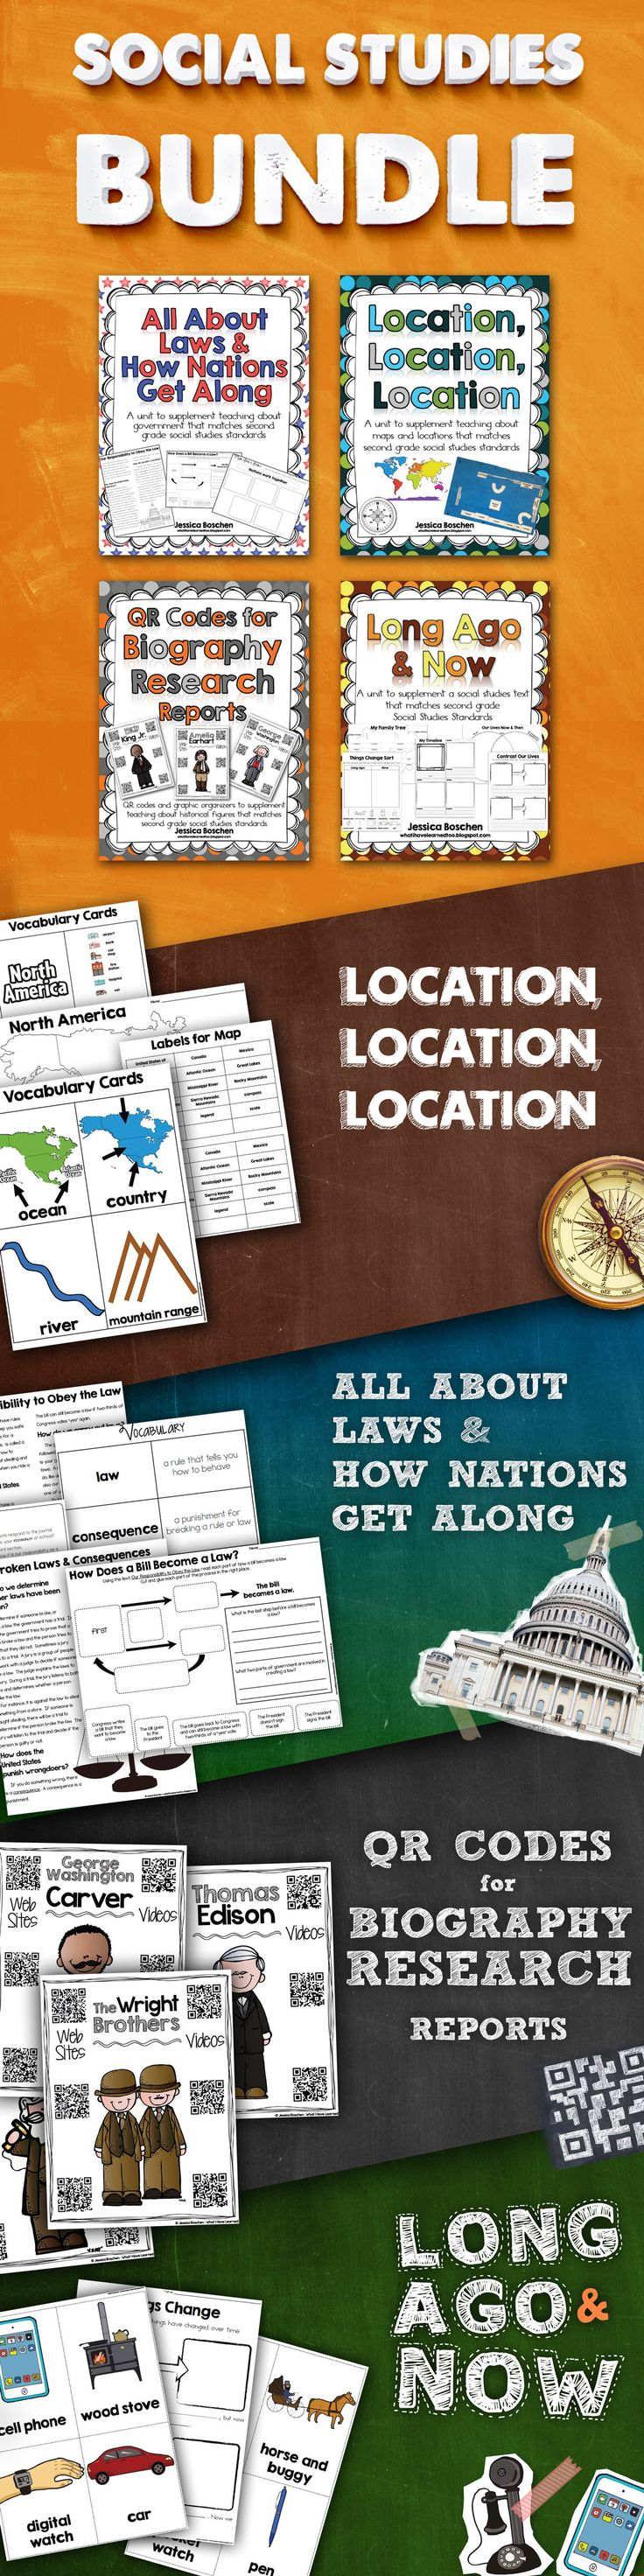 Social Studies BUNDLE includes resources for Long Ago & Now, Biographies, Laws & How Nations Get Along, and Map Skills & Location. A great year-long resource for elementary social studies.